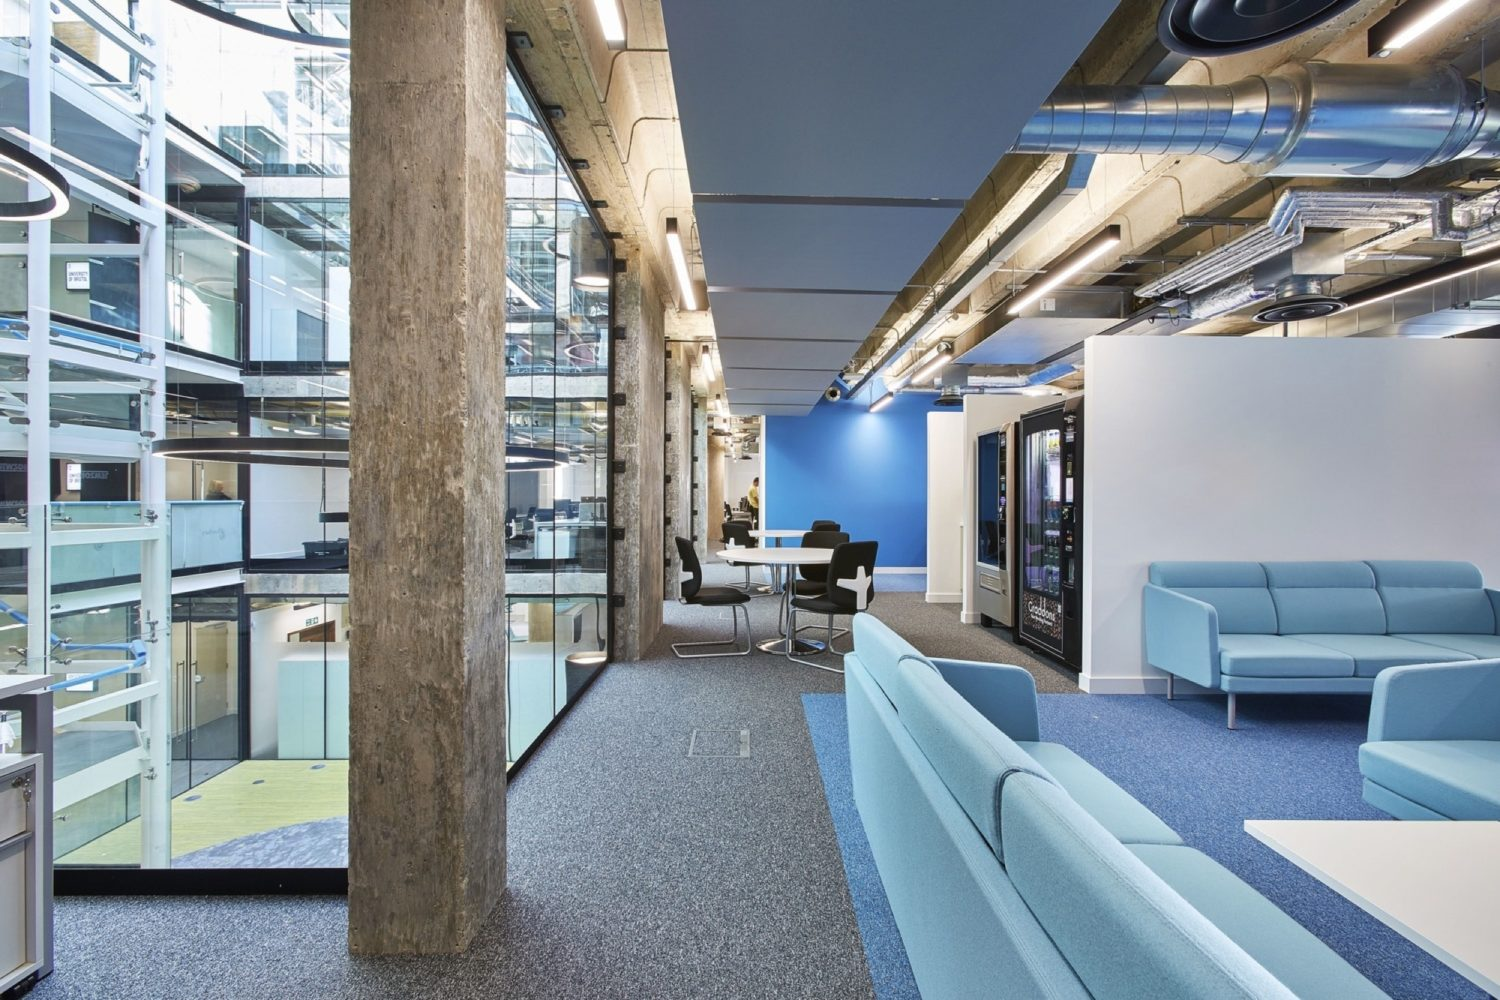 University Bristol office fit out with exposed services